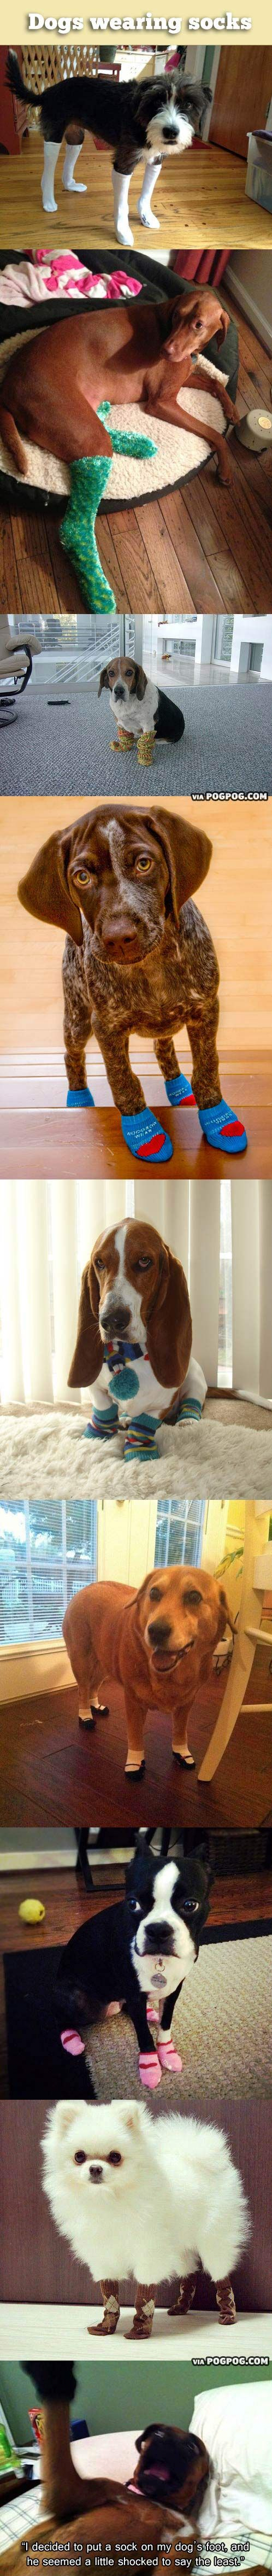 Dogs wearing socks... - The Meta Picture